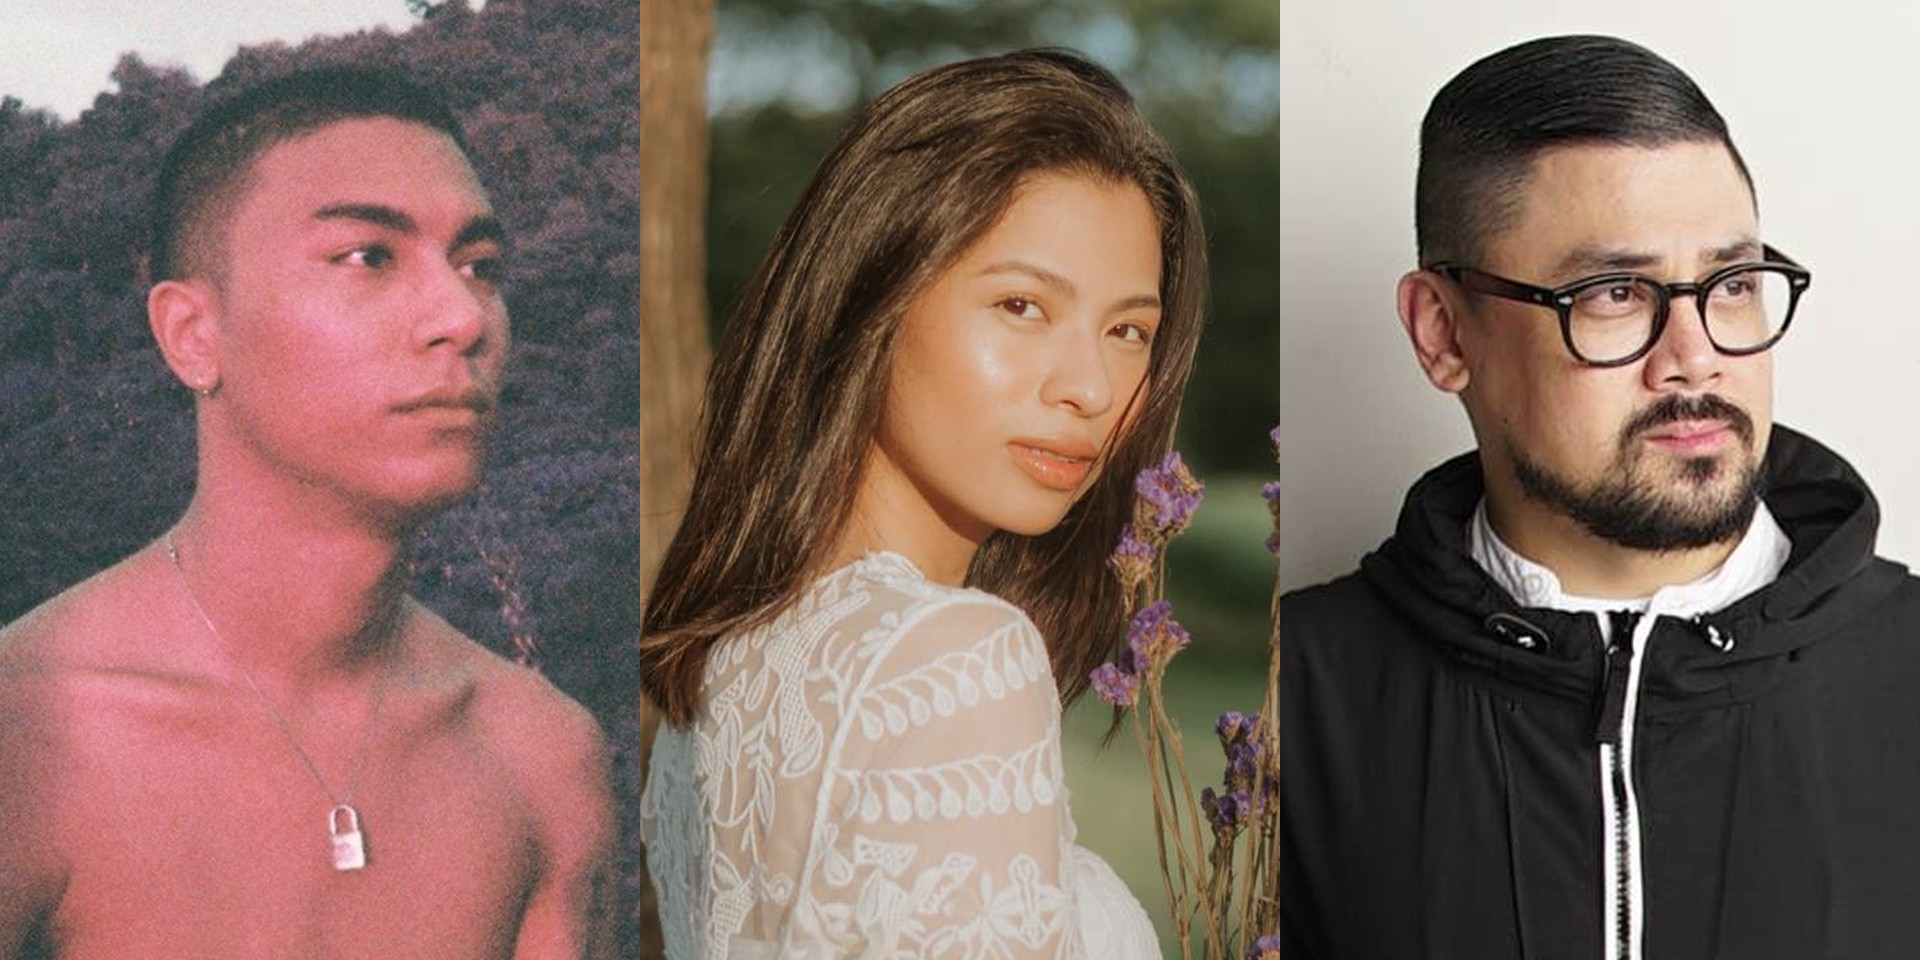 Jason Dhakal, Janine Teñoso, Conscious & the Goodness, and more release new music – listen